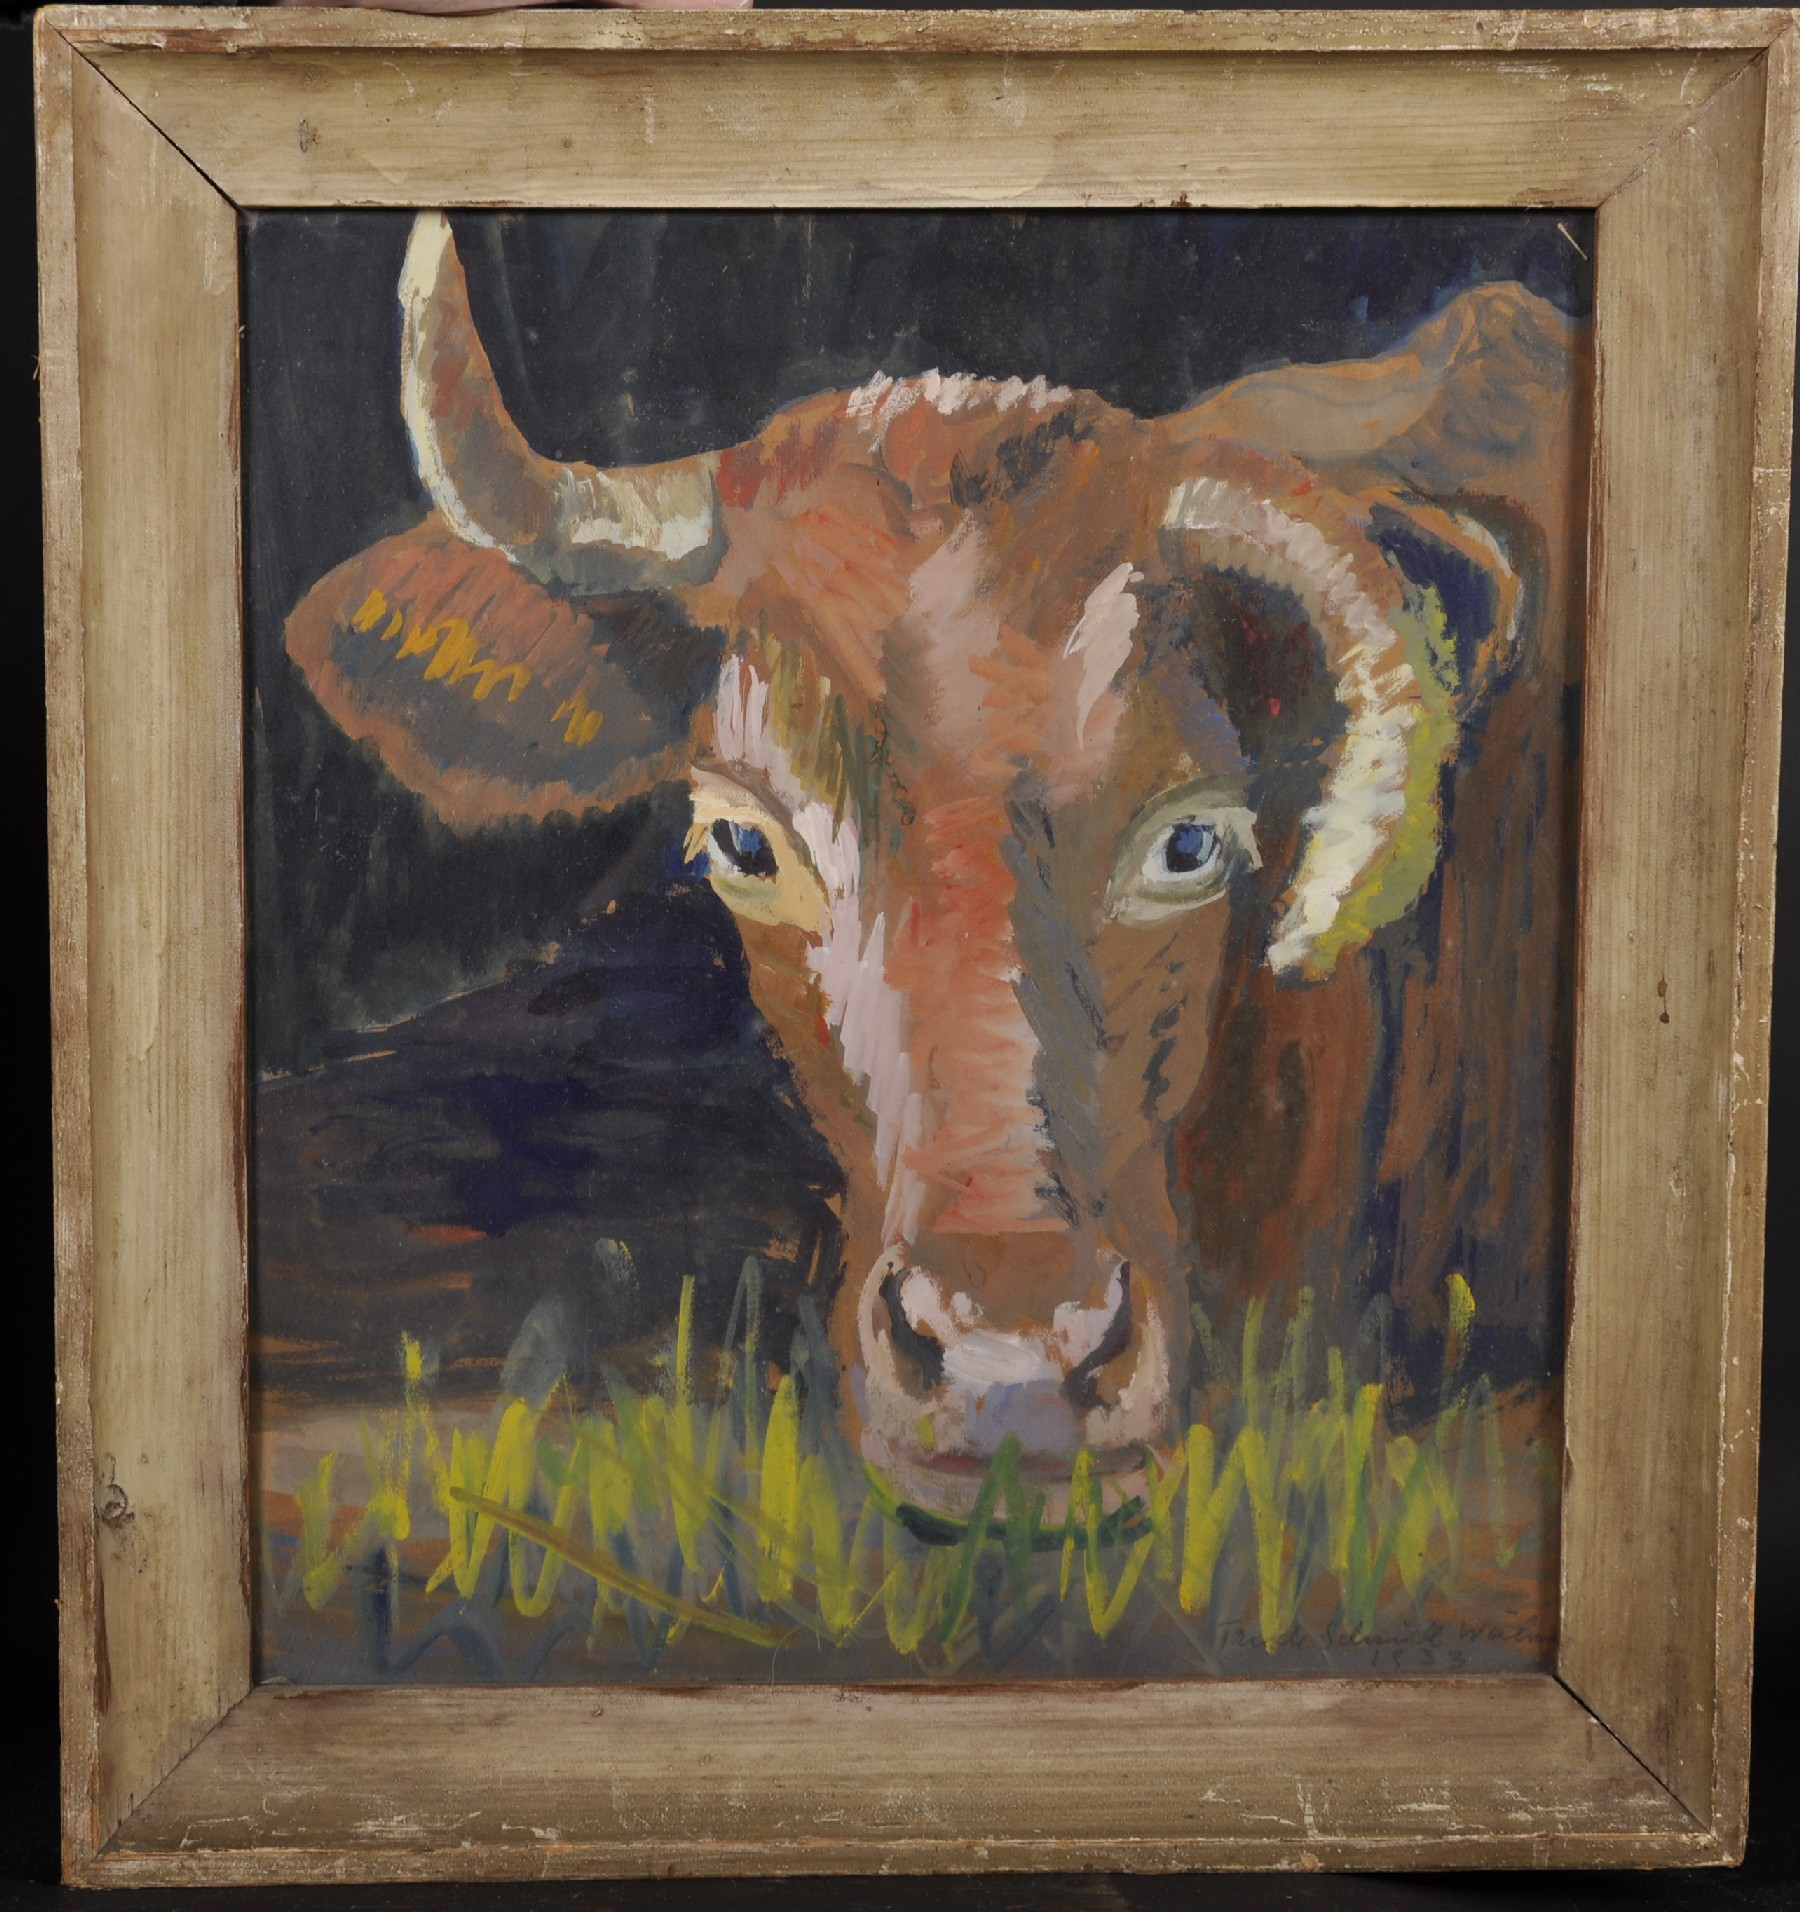 """Trude Schmidl-Waehner (1900-1979) Austrian. """"Kuh"""" (Cow), Watercolour, Signed and Dated 1933 in - Image 2 of 5"""